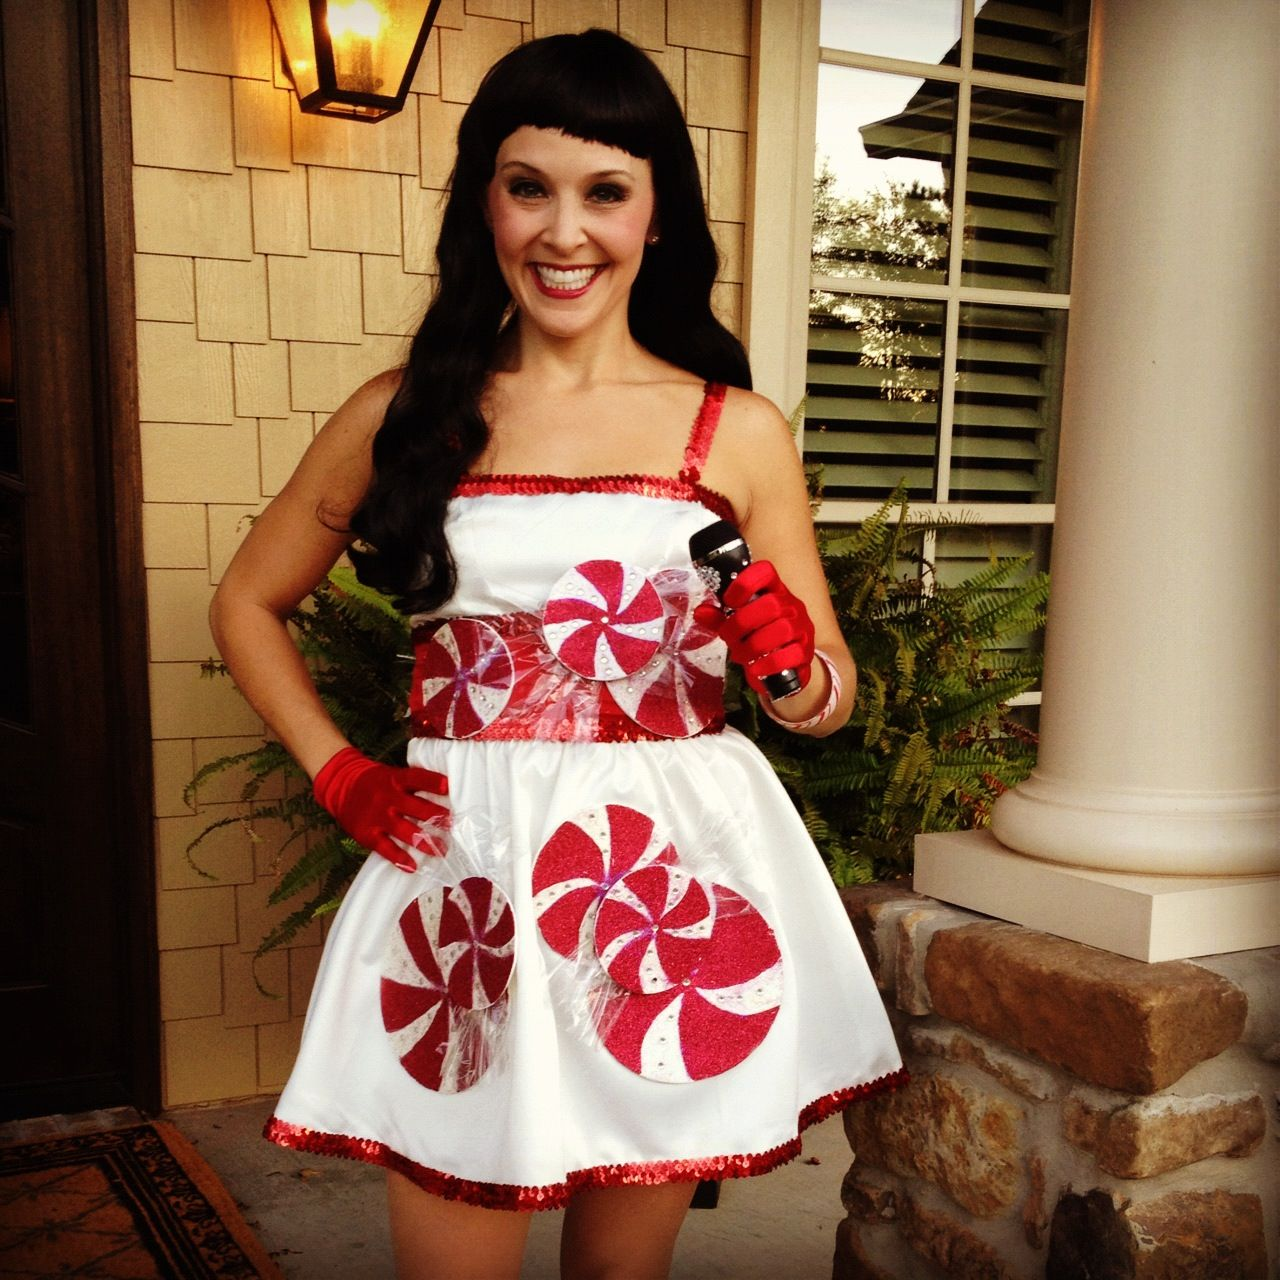 Katy Perry costume | costumes | Pinterest | Katy perry ...